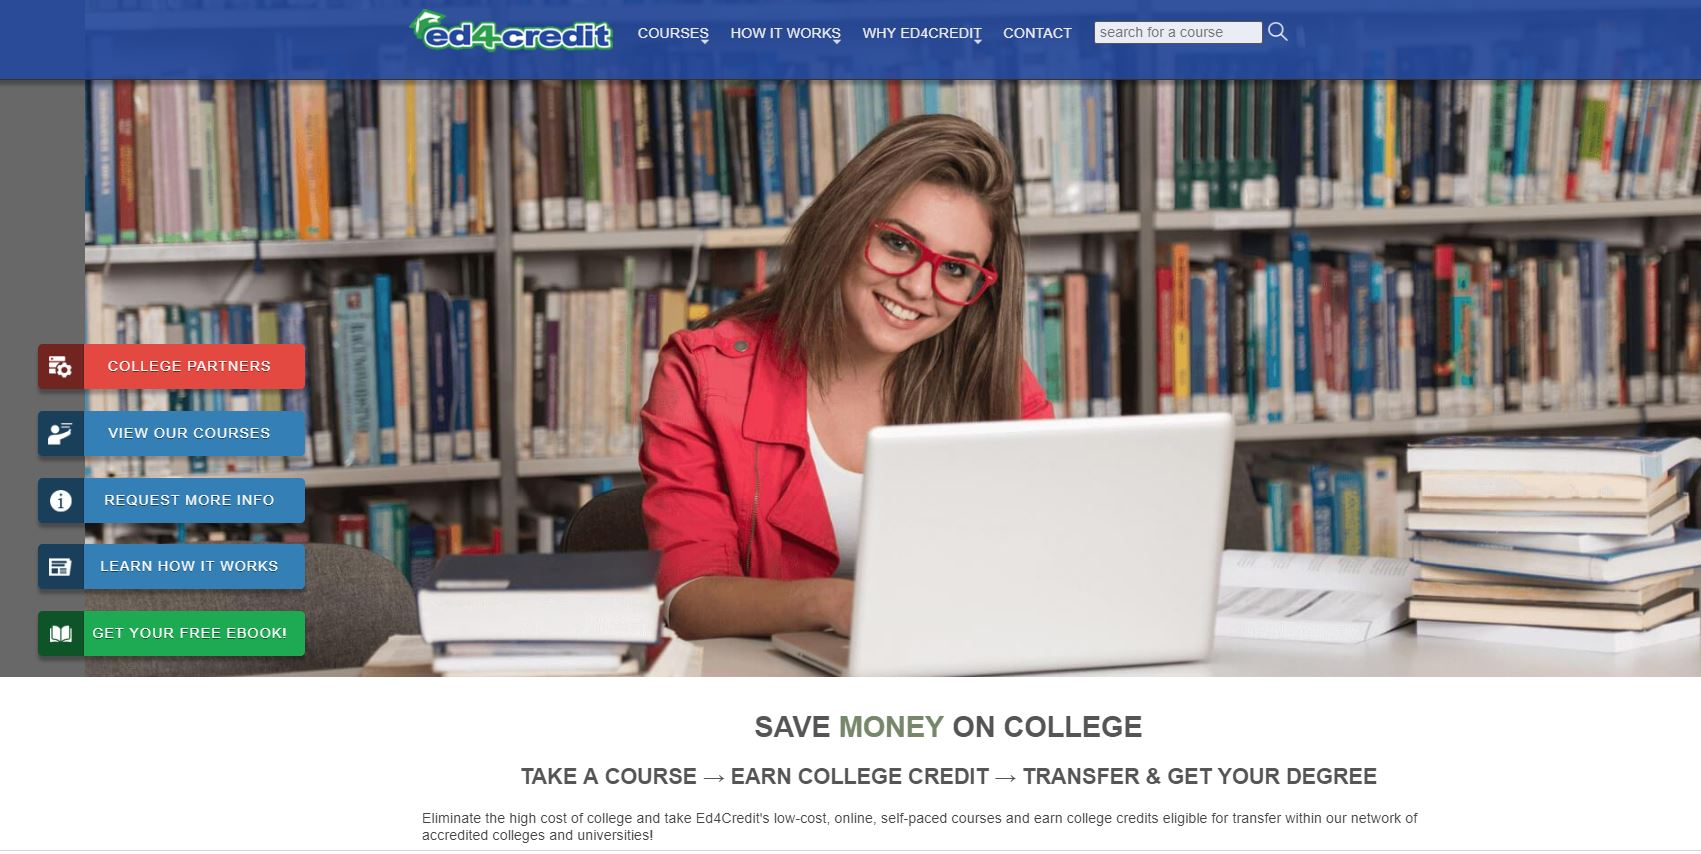 Self-Paced Online College Courses. You can earn college credit without breaking the bank with Ed4Credit's online college courses. No hidden fees, everything is included, sign up, take a course, and transfer the ACE Credit.